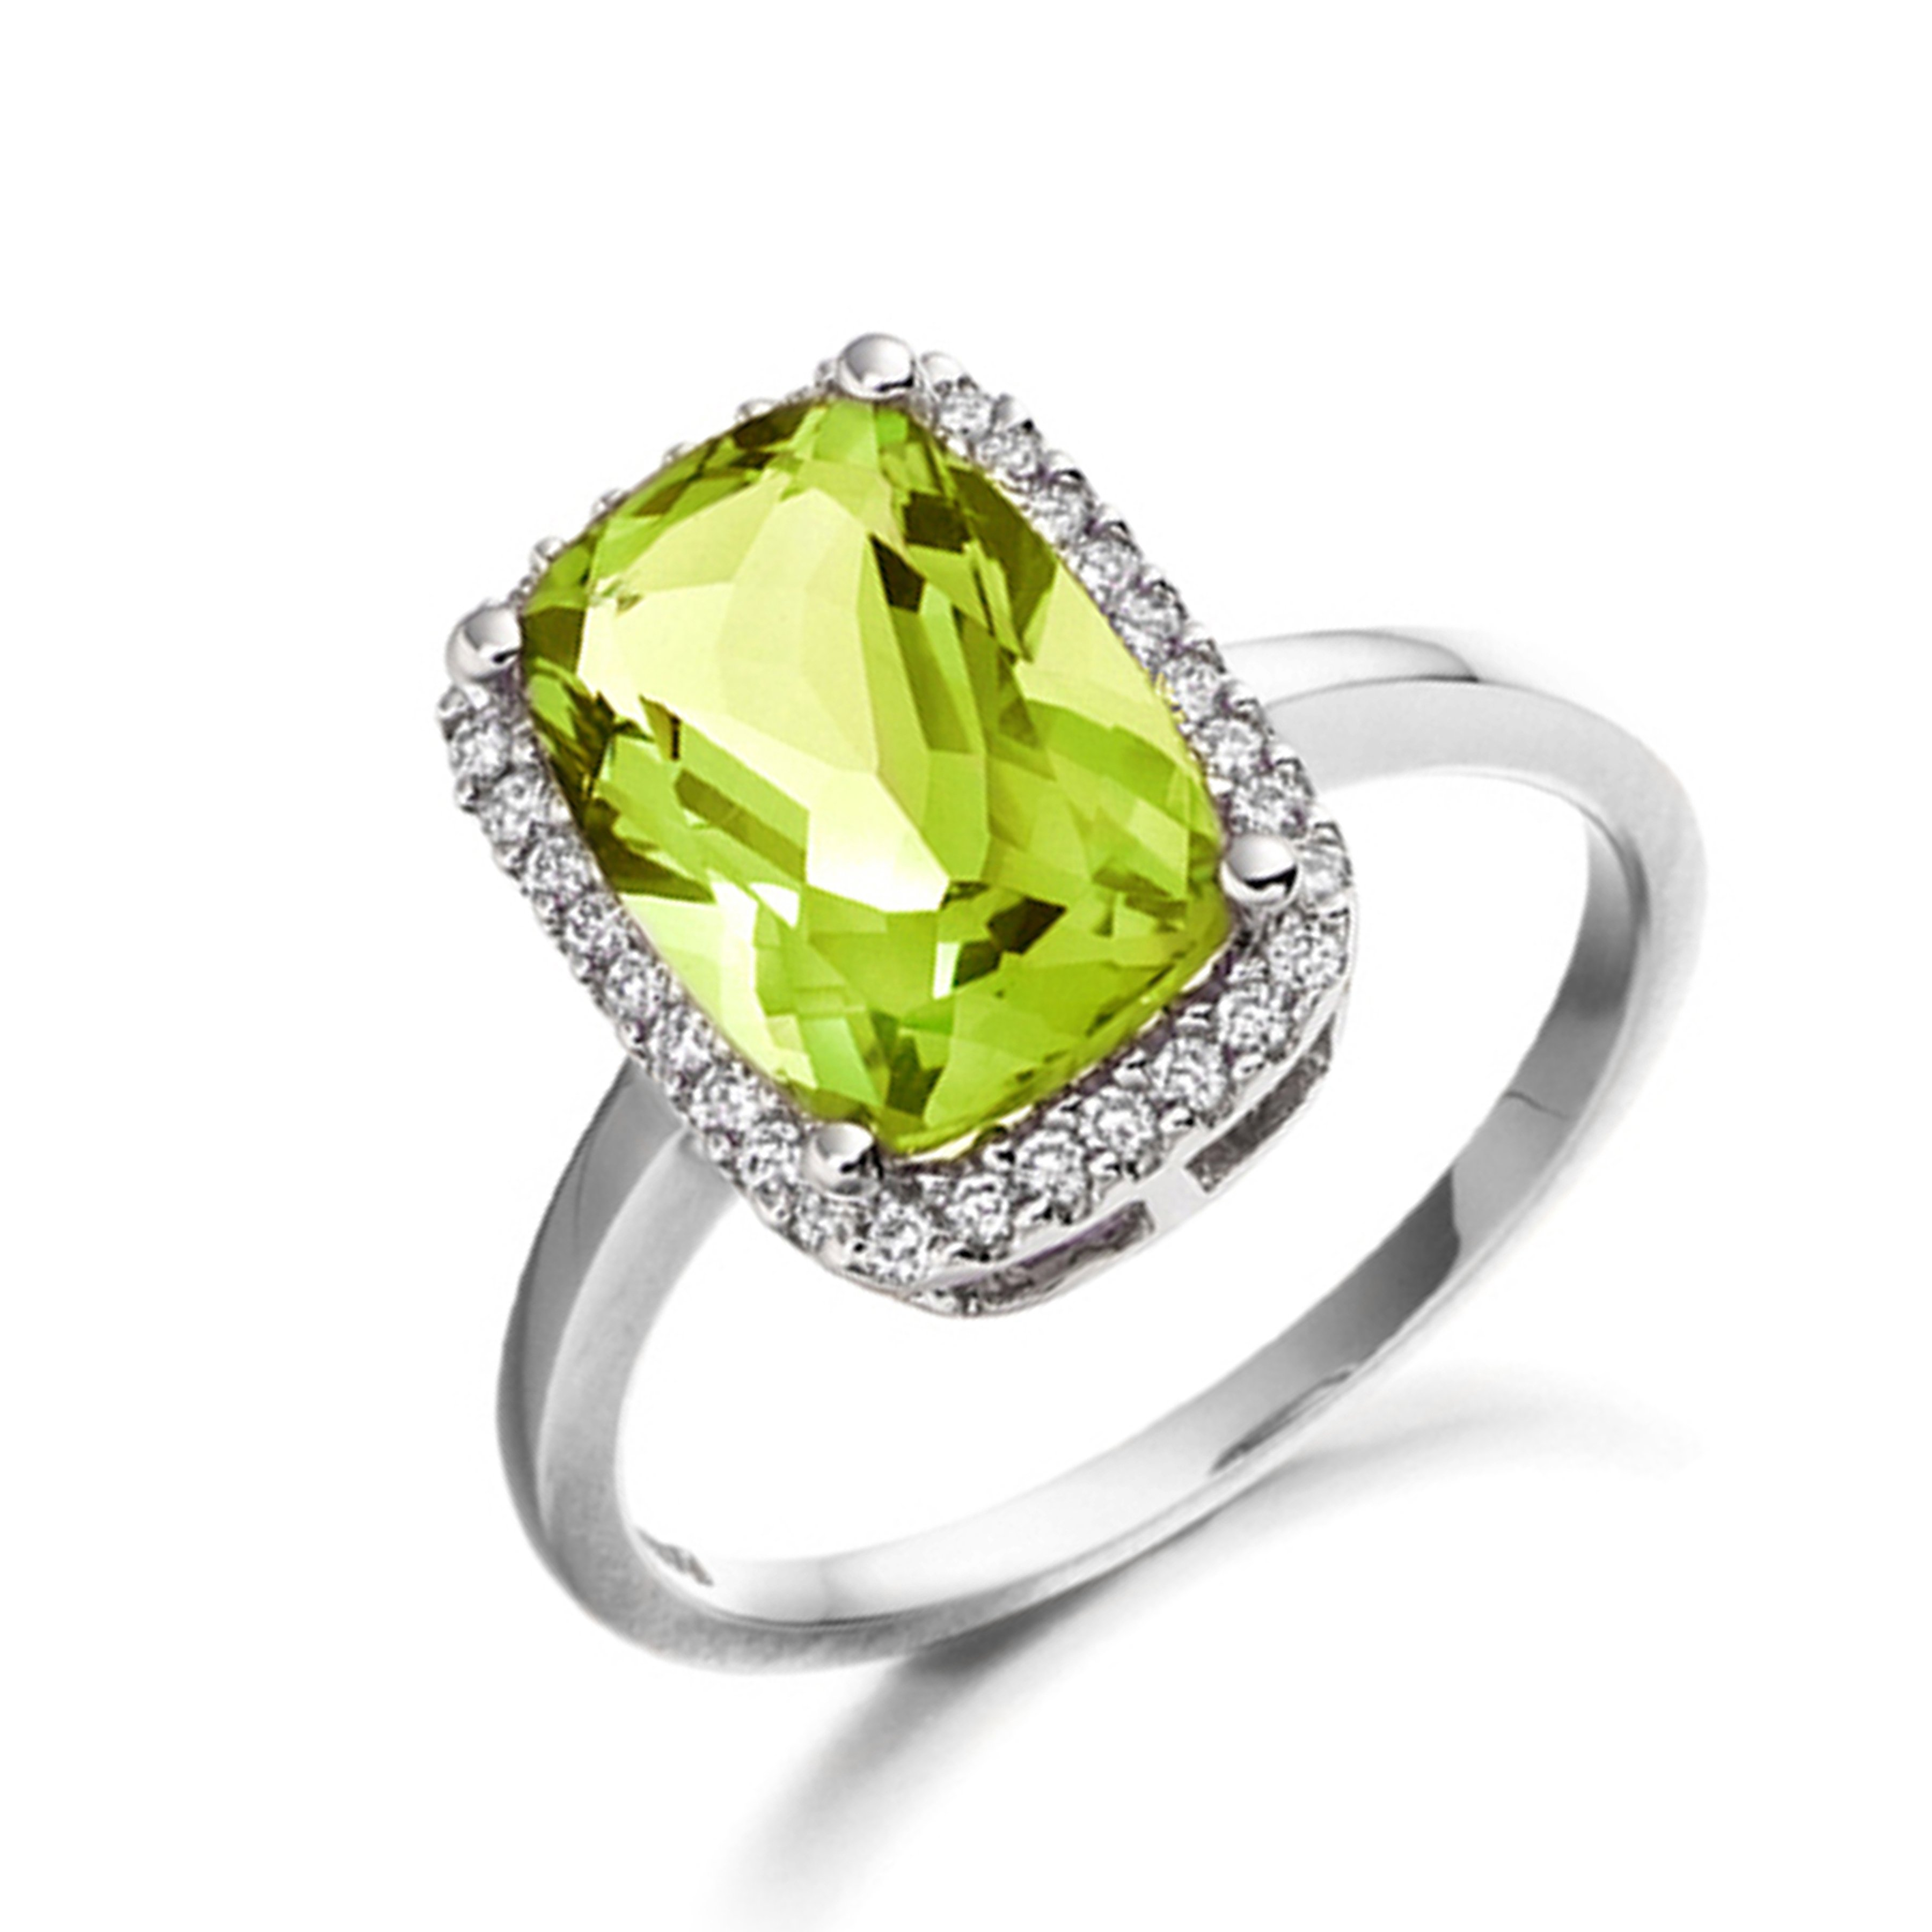 Princess Cut Diamond Halo Diamond Earrings Available in White, Yellow, Rose Gold and Platinum